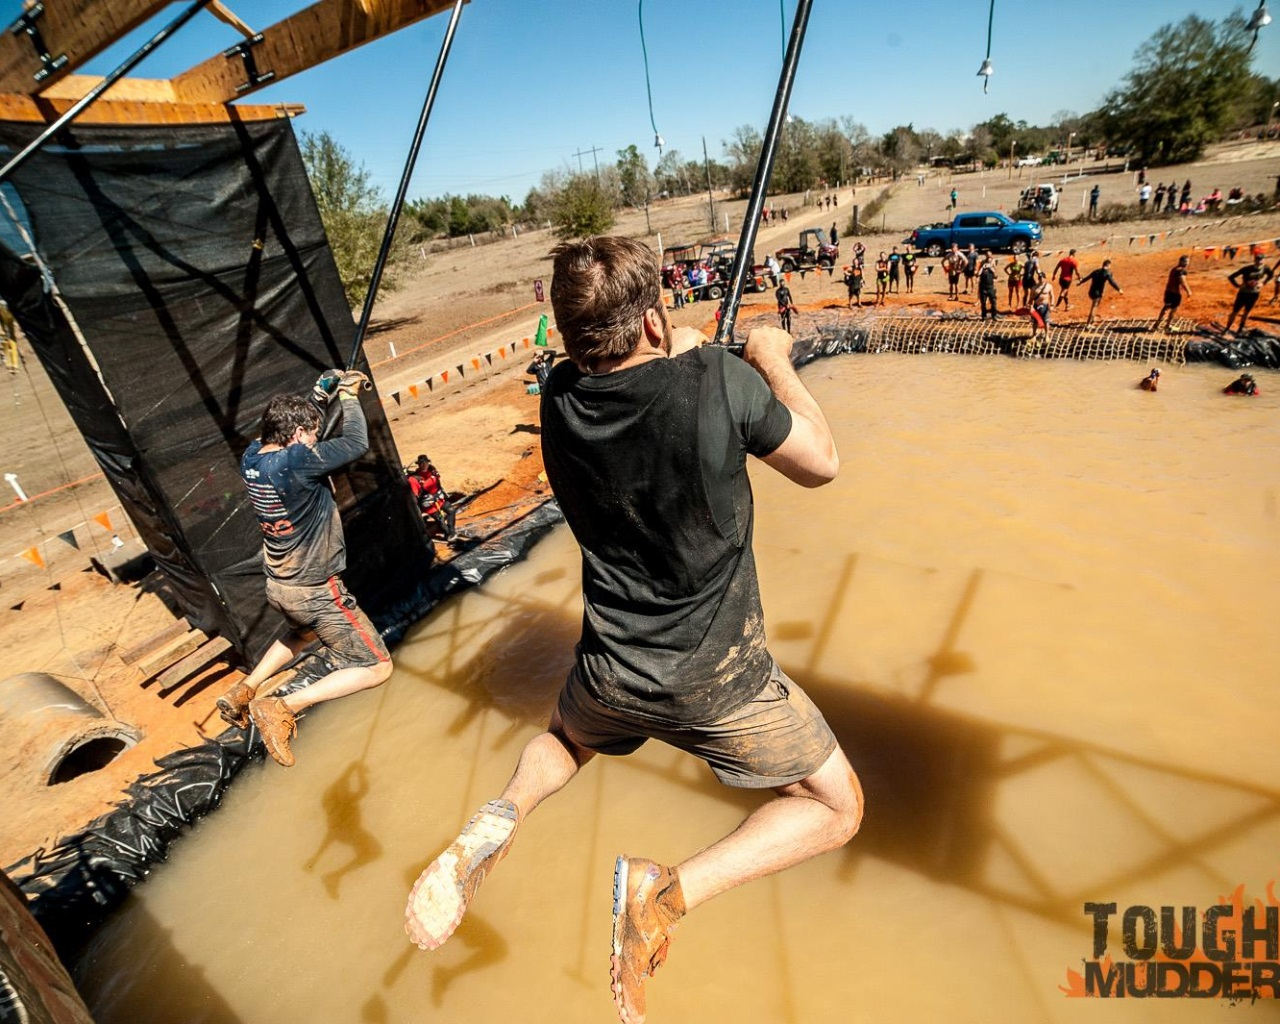 Tough Mudder Events 2017 Vier Neue Hindernisse Angekündigt